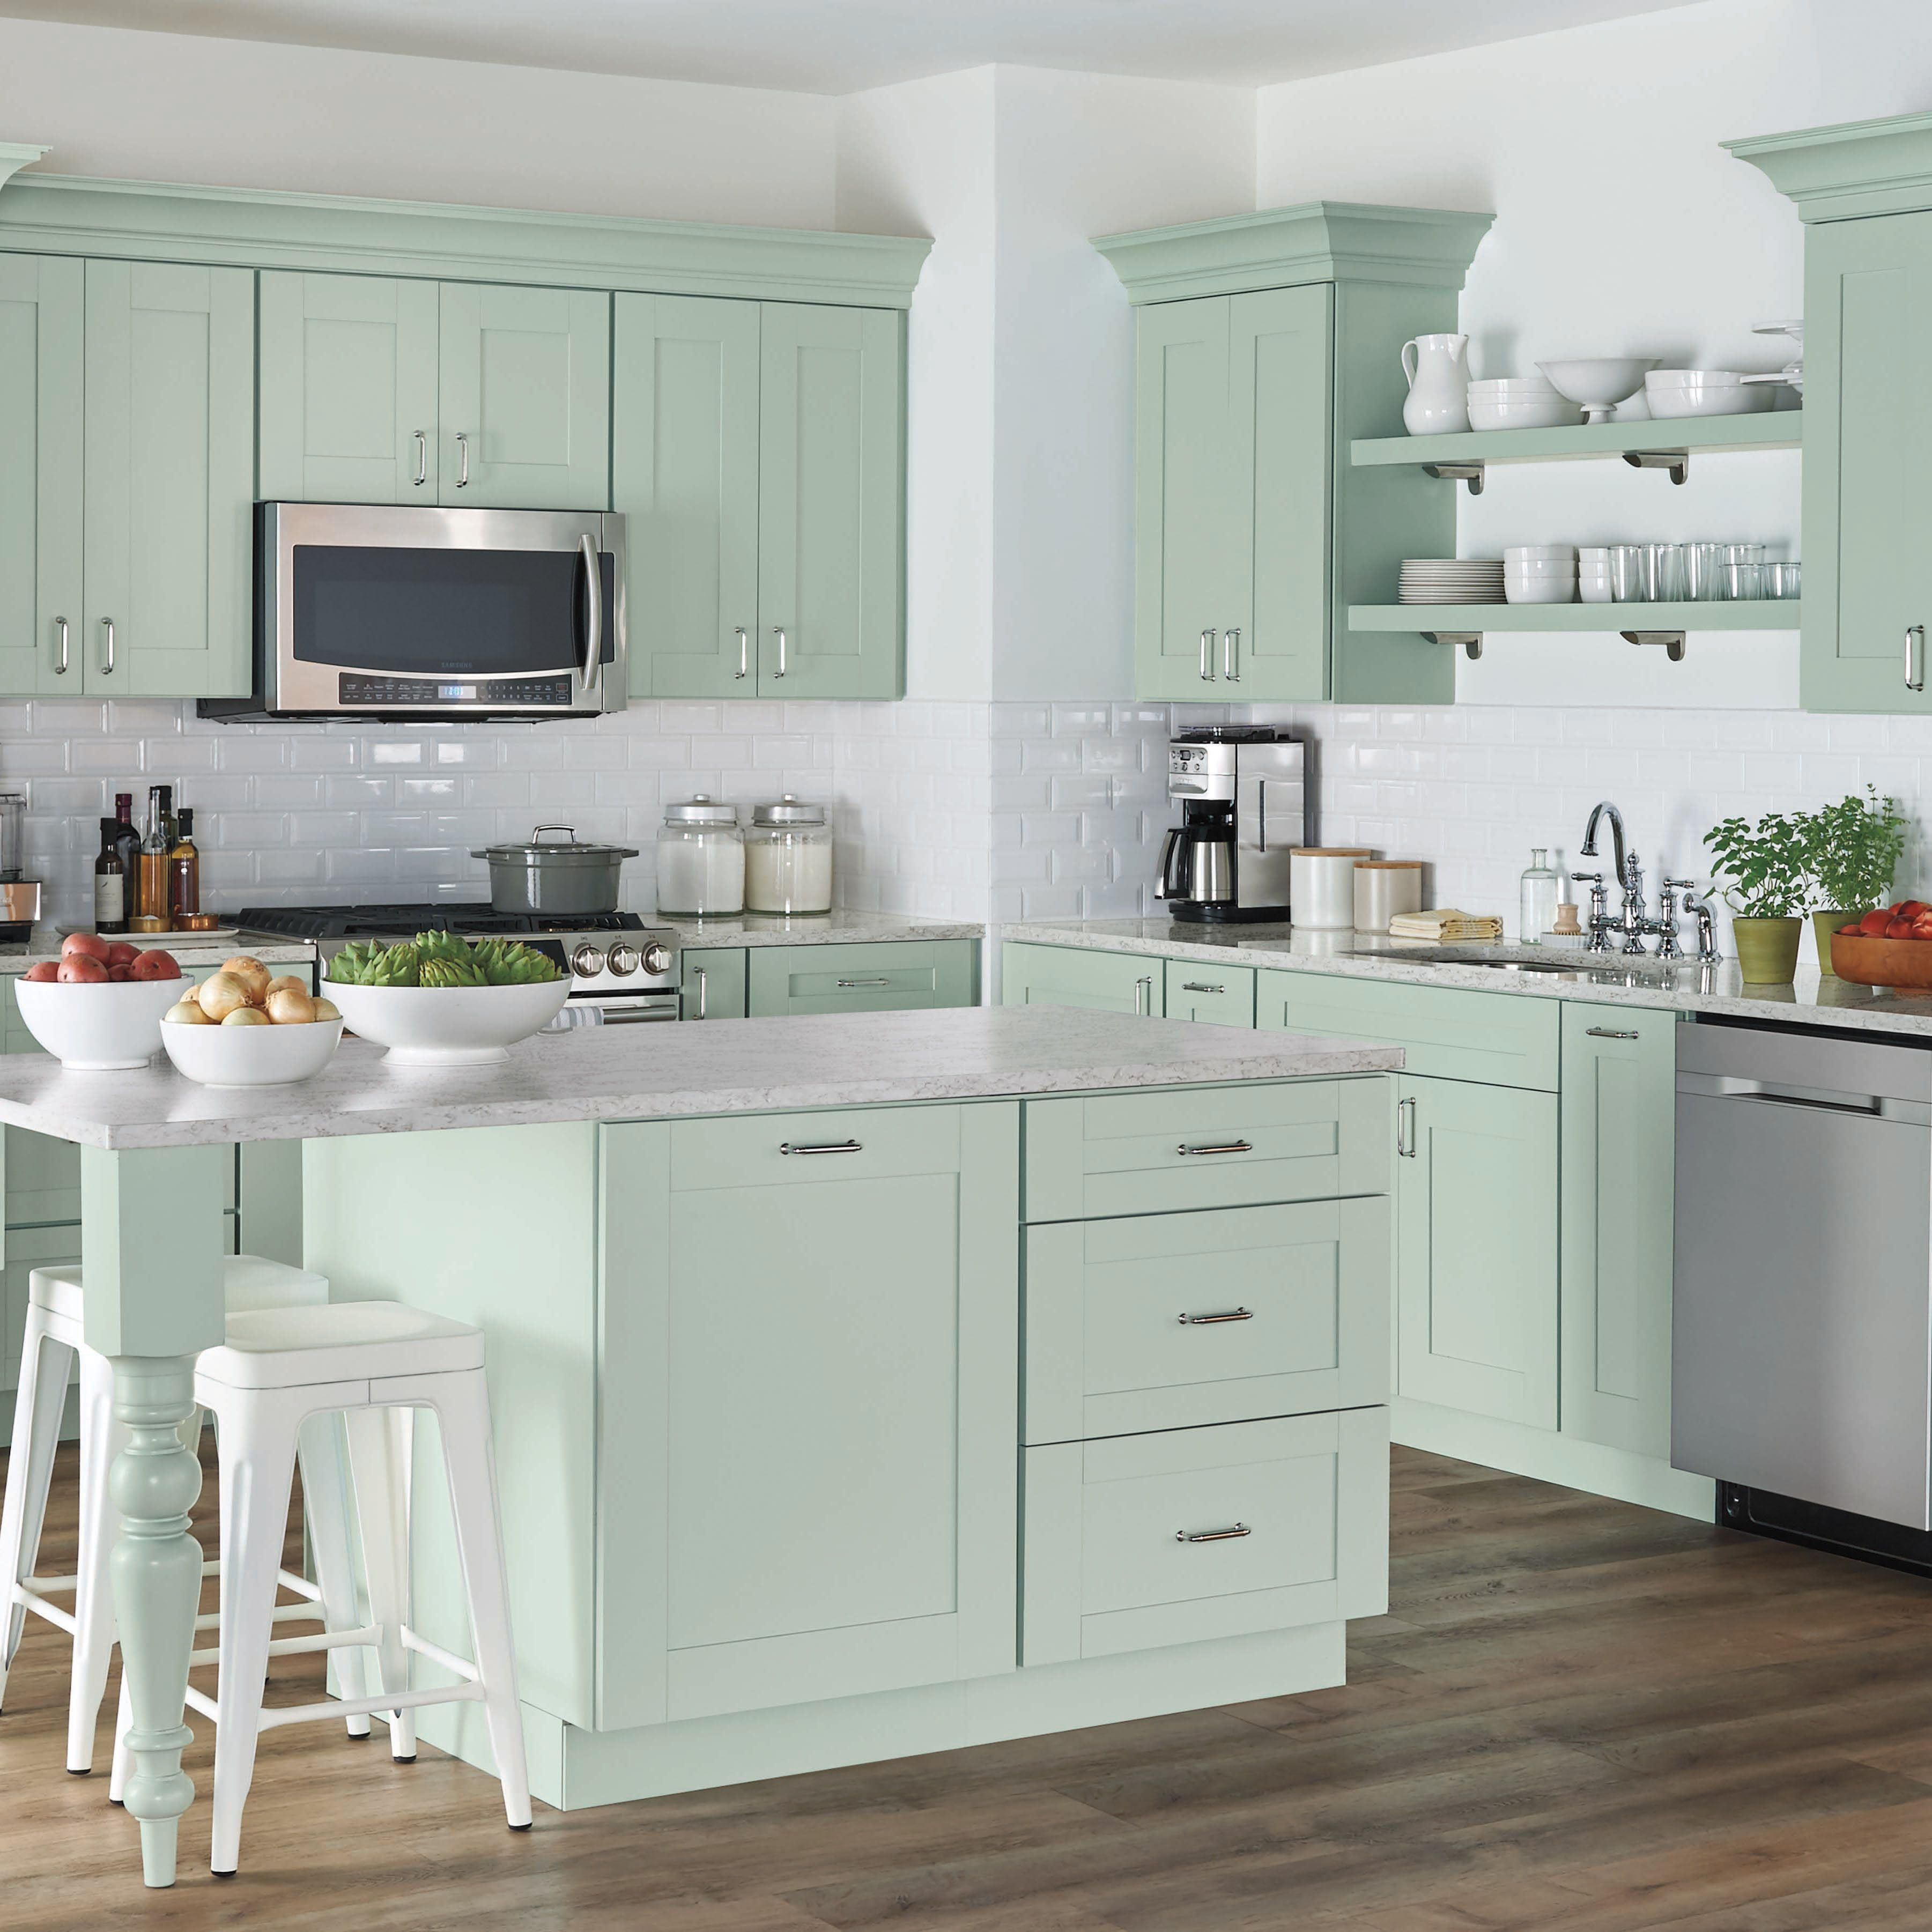 Choosing A Kitchen Island 13 Things You Need To Know Kitchen Remodel Kitchen Style Kitchen Design